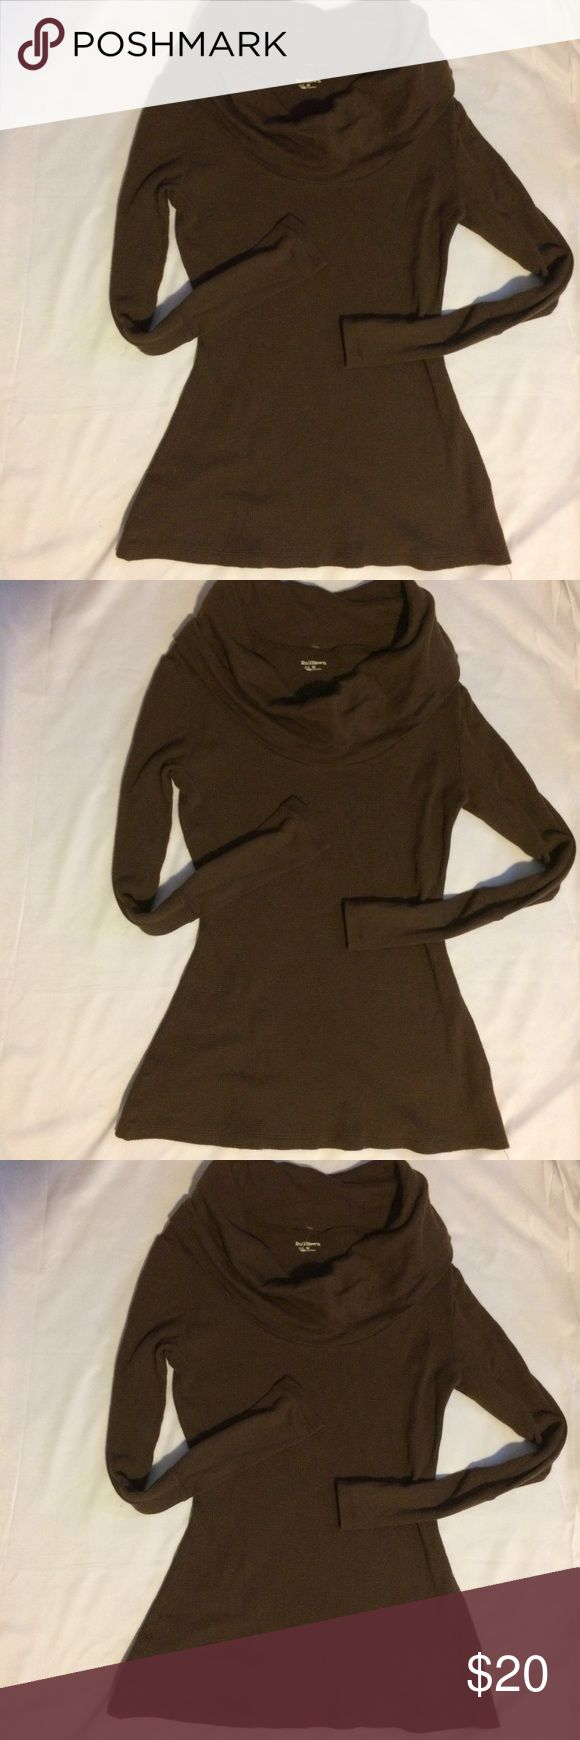 Ruff Hewn Turtleneck Sz M Brown Cow Neck Women's Top Preowned Great Condition Ruff Hewn Tops